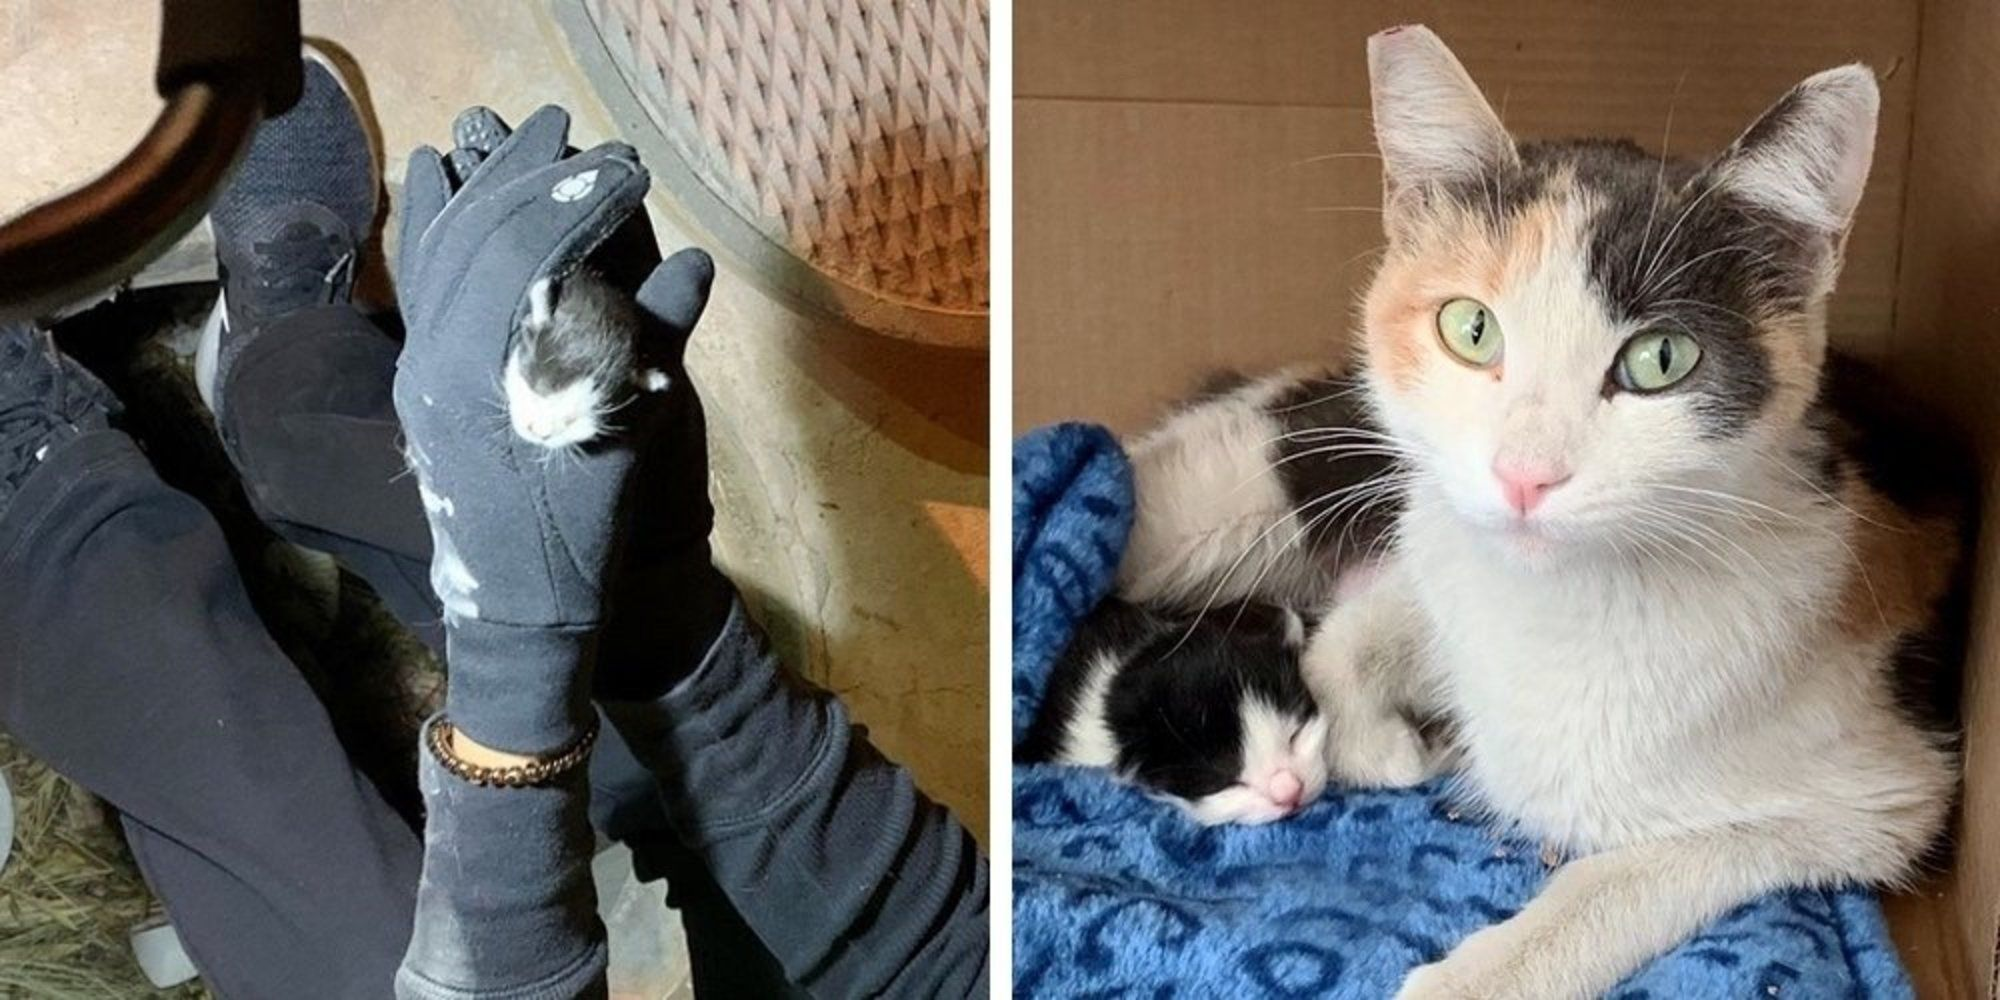 Kitten S Loud Cries Help Rescuers Find Her They Locate Her Cat Mom Too Cat Mom Kittens Cats